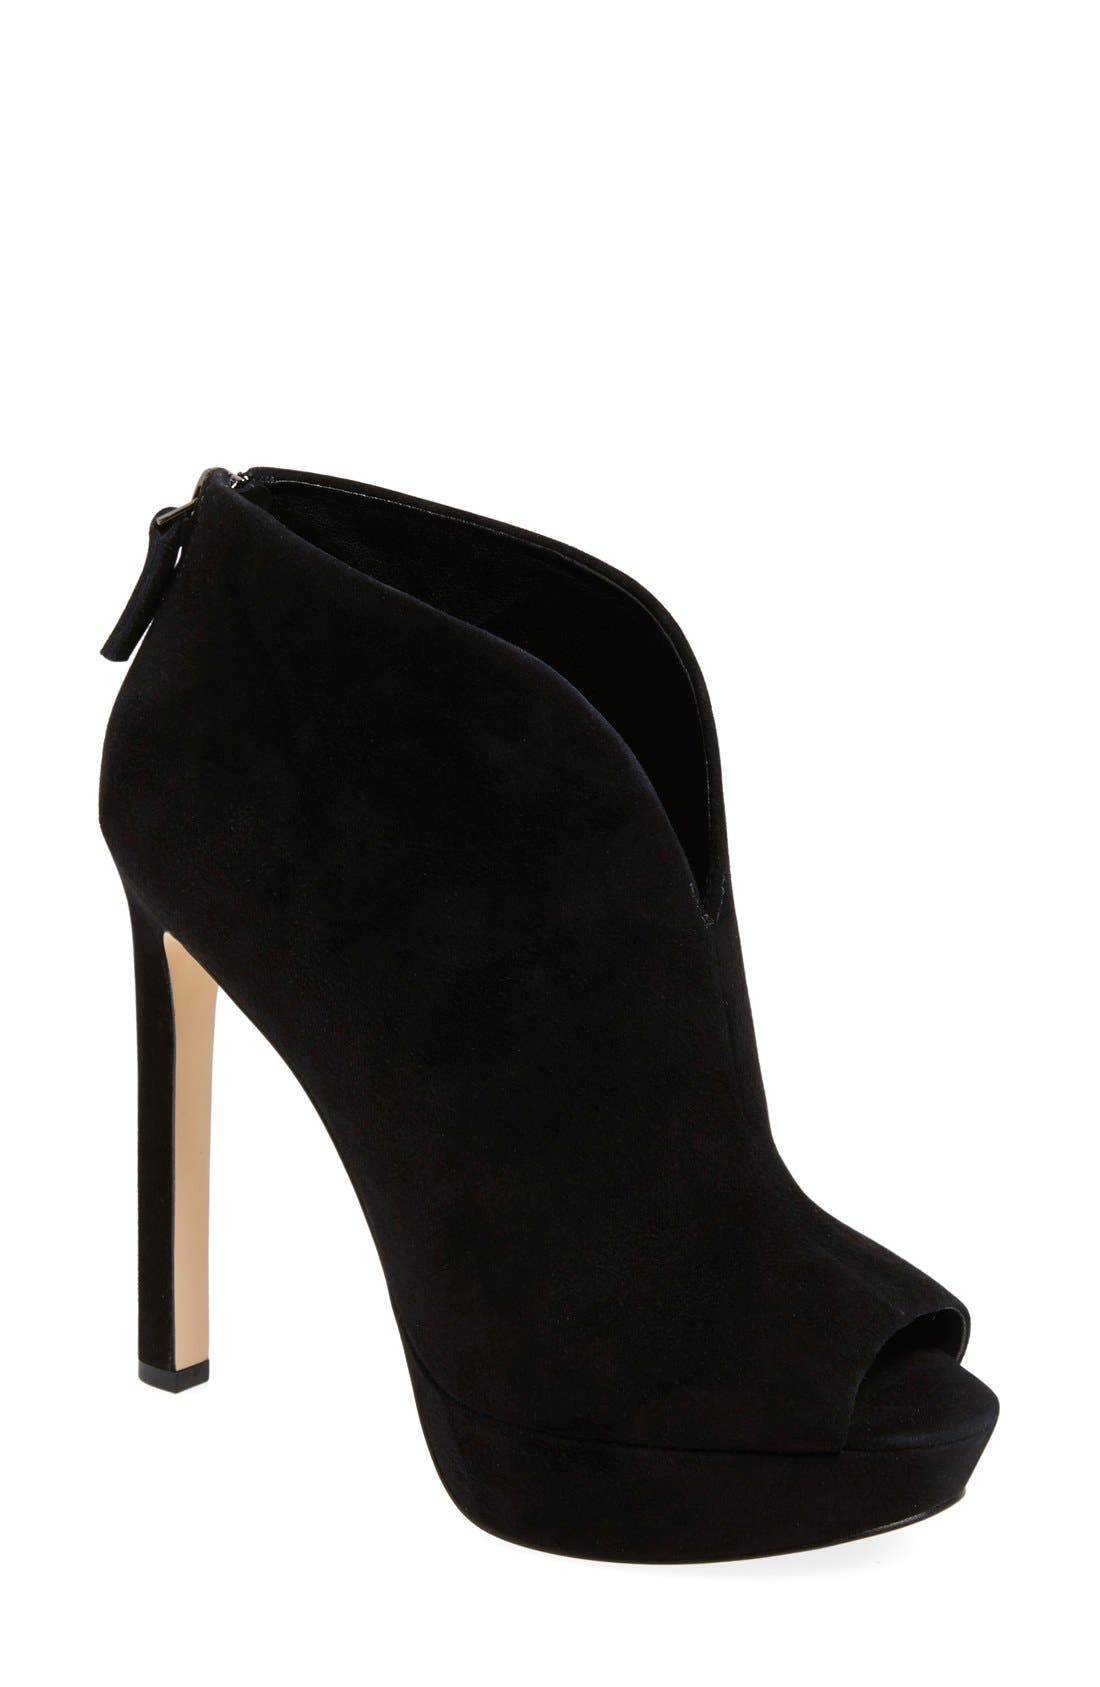 Main Image - Nine West 'Vain' Platform Bootie (Women)